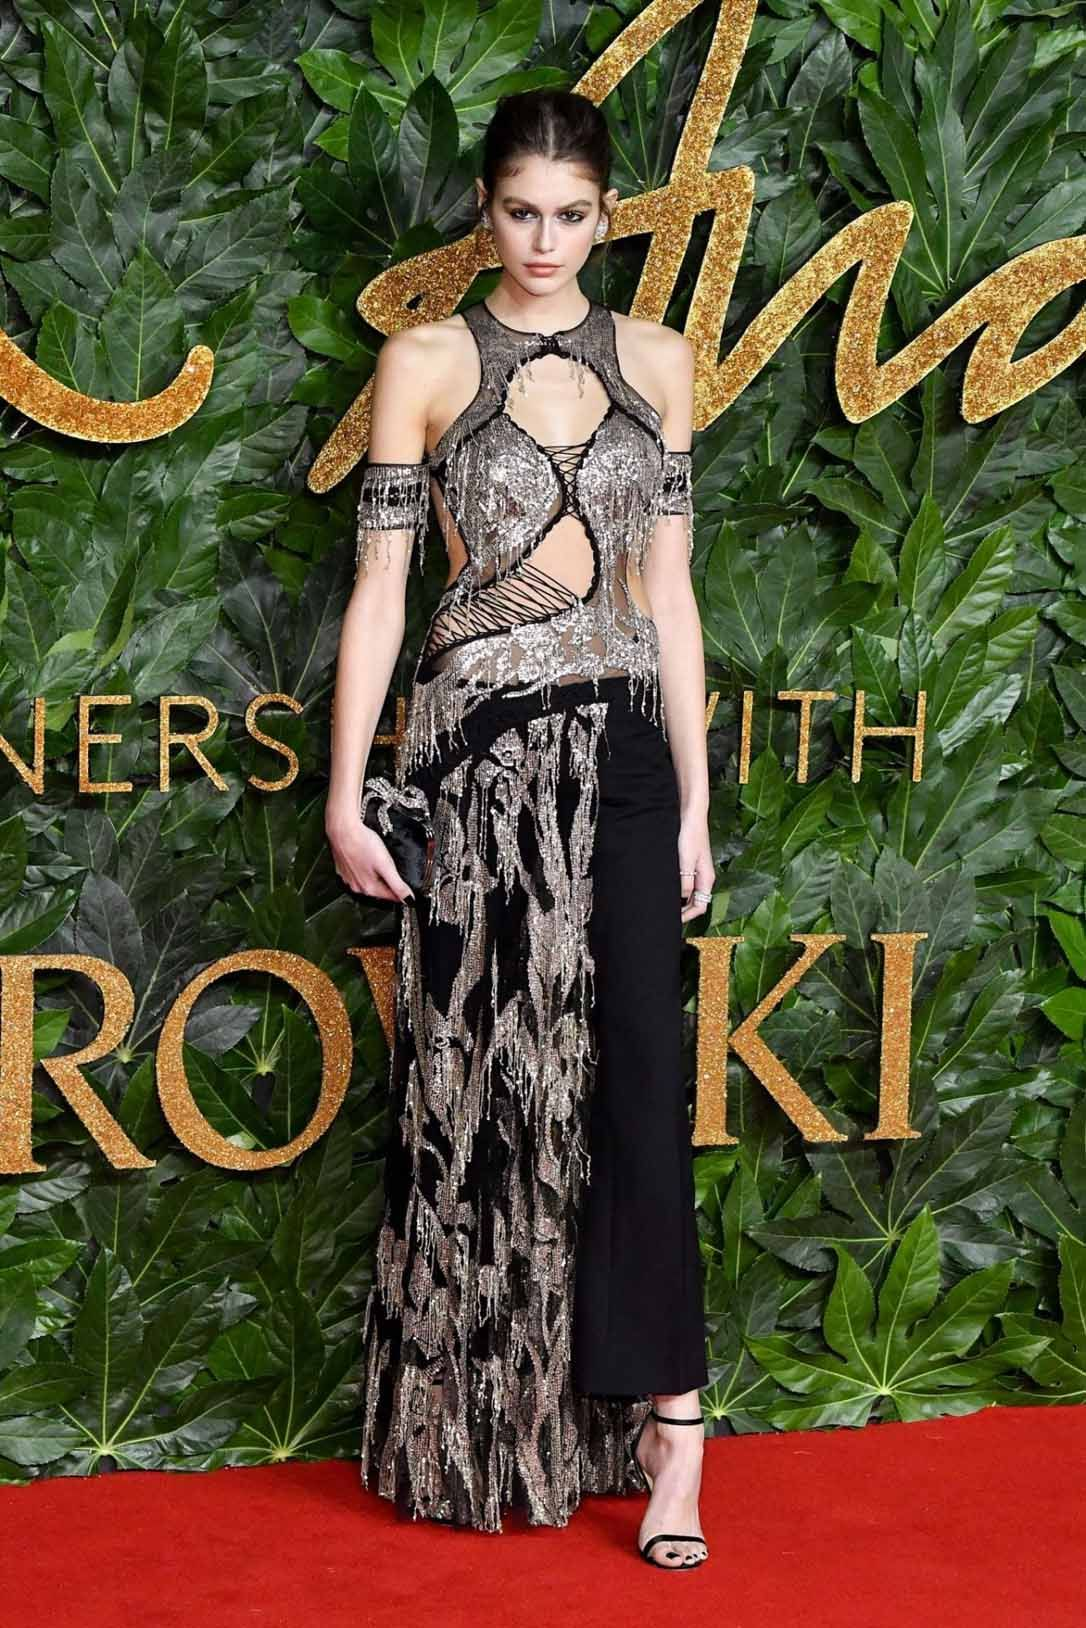 d41b8b52e5c7 Kaia Gerber at The Fashion Awards 2018 | CELEBRITIES RED CARPET in ...